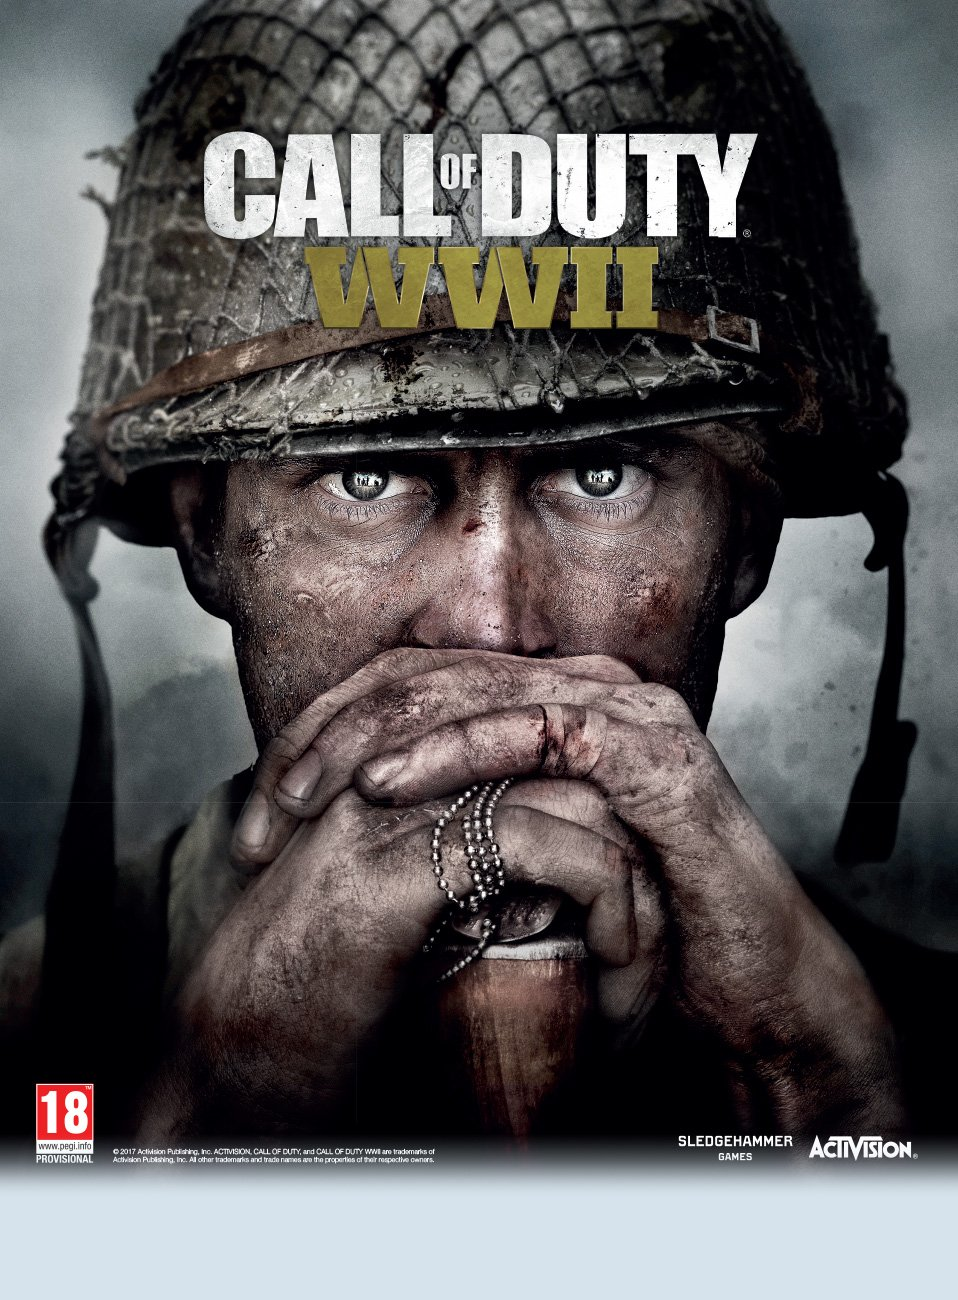 Call of duty wwii for Mobilia webhallen